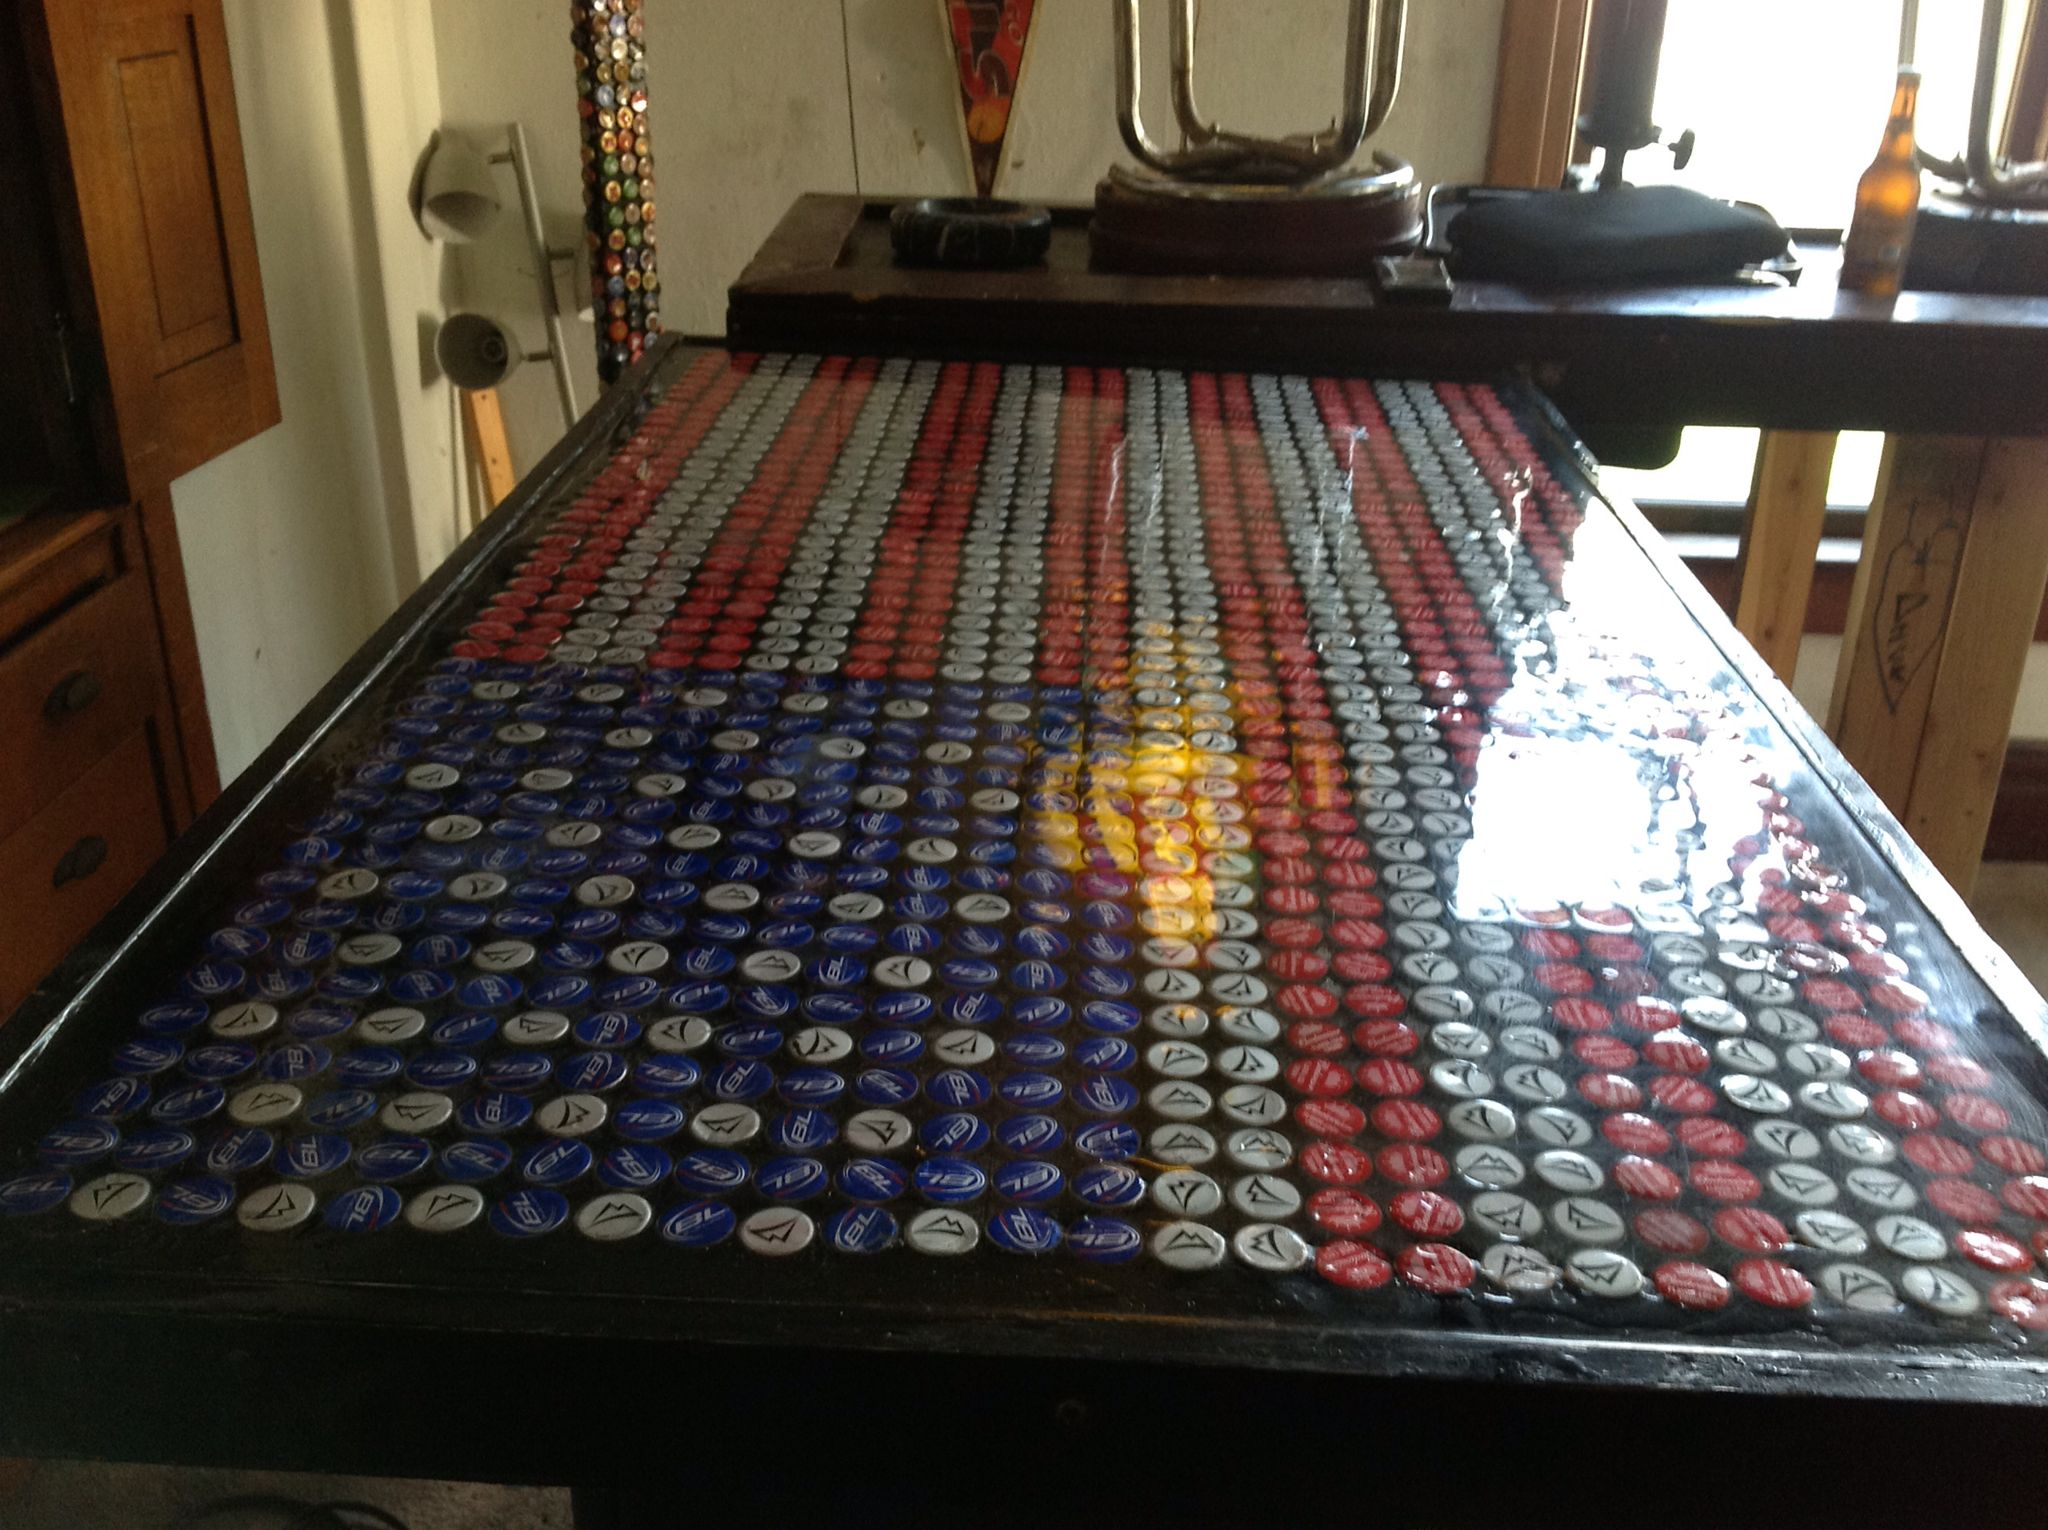 Pin by Timothy Doyle on Bar top epoxy bottle caps | Bar ...